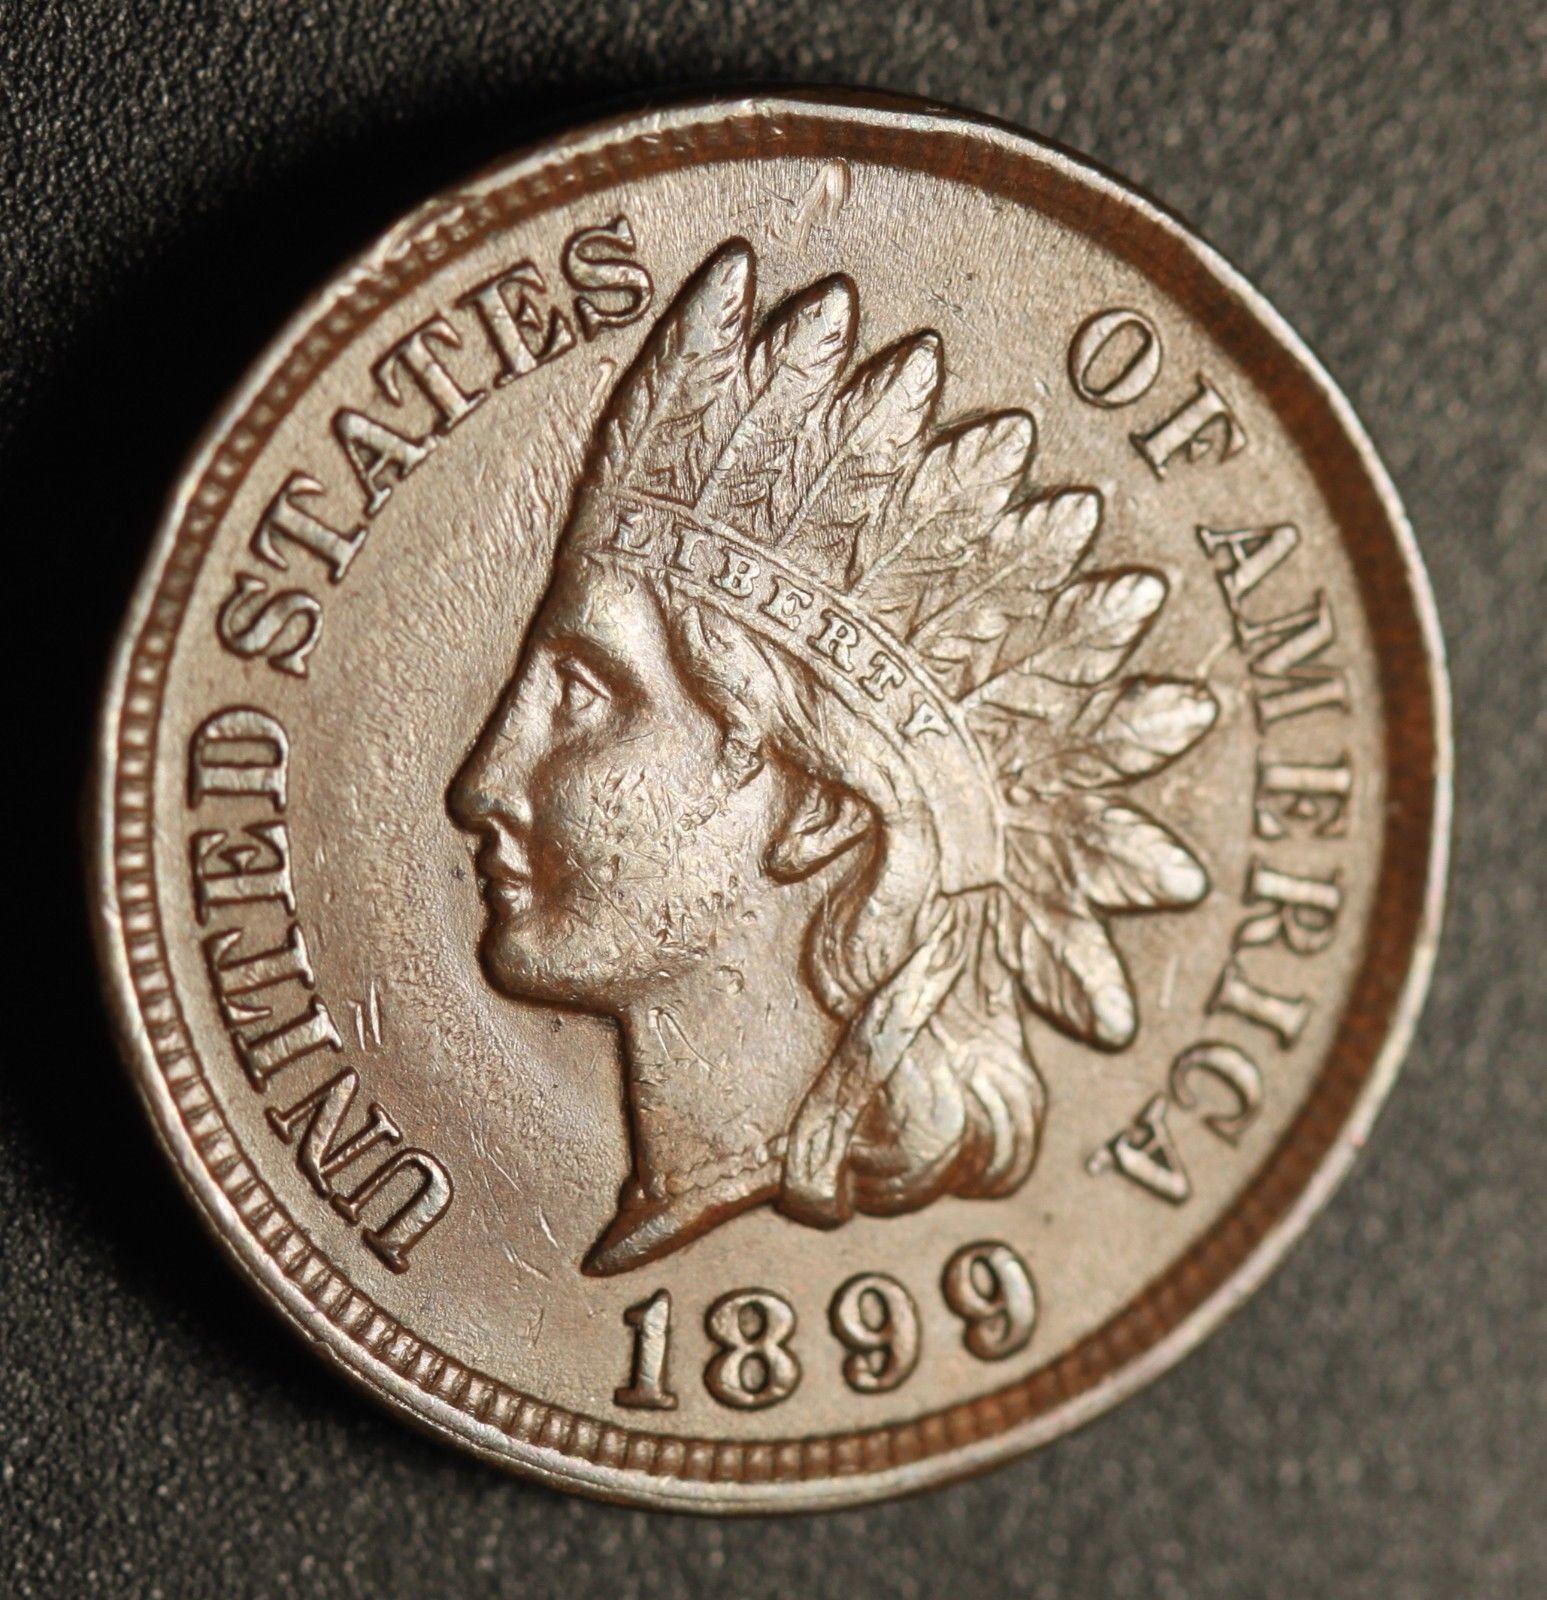 1899 RPD-031 - Indian Head Penny - Photo by Ed Nathanson